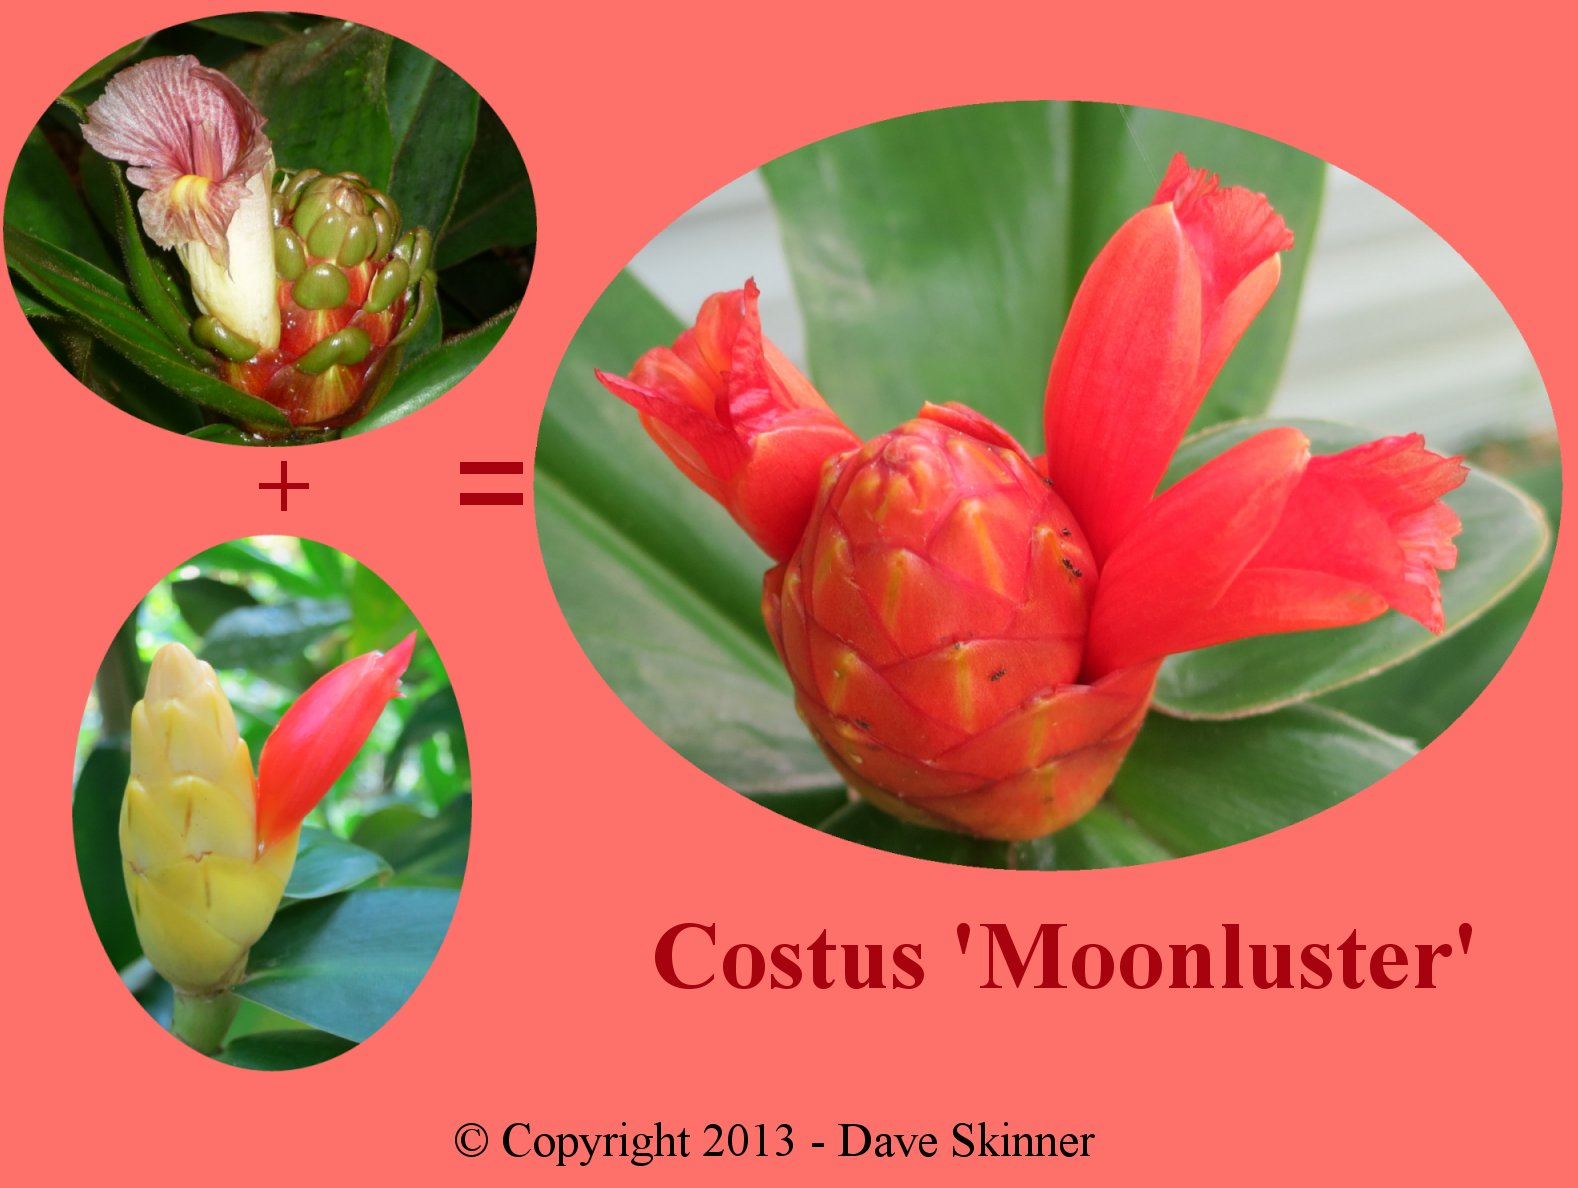 Photo# 15699 - Costus 'Moonluster' - showing the two parent plants for this hybrid